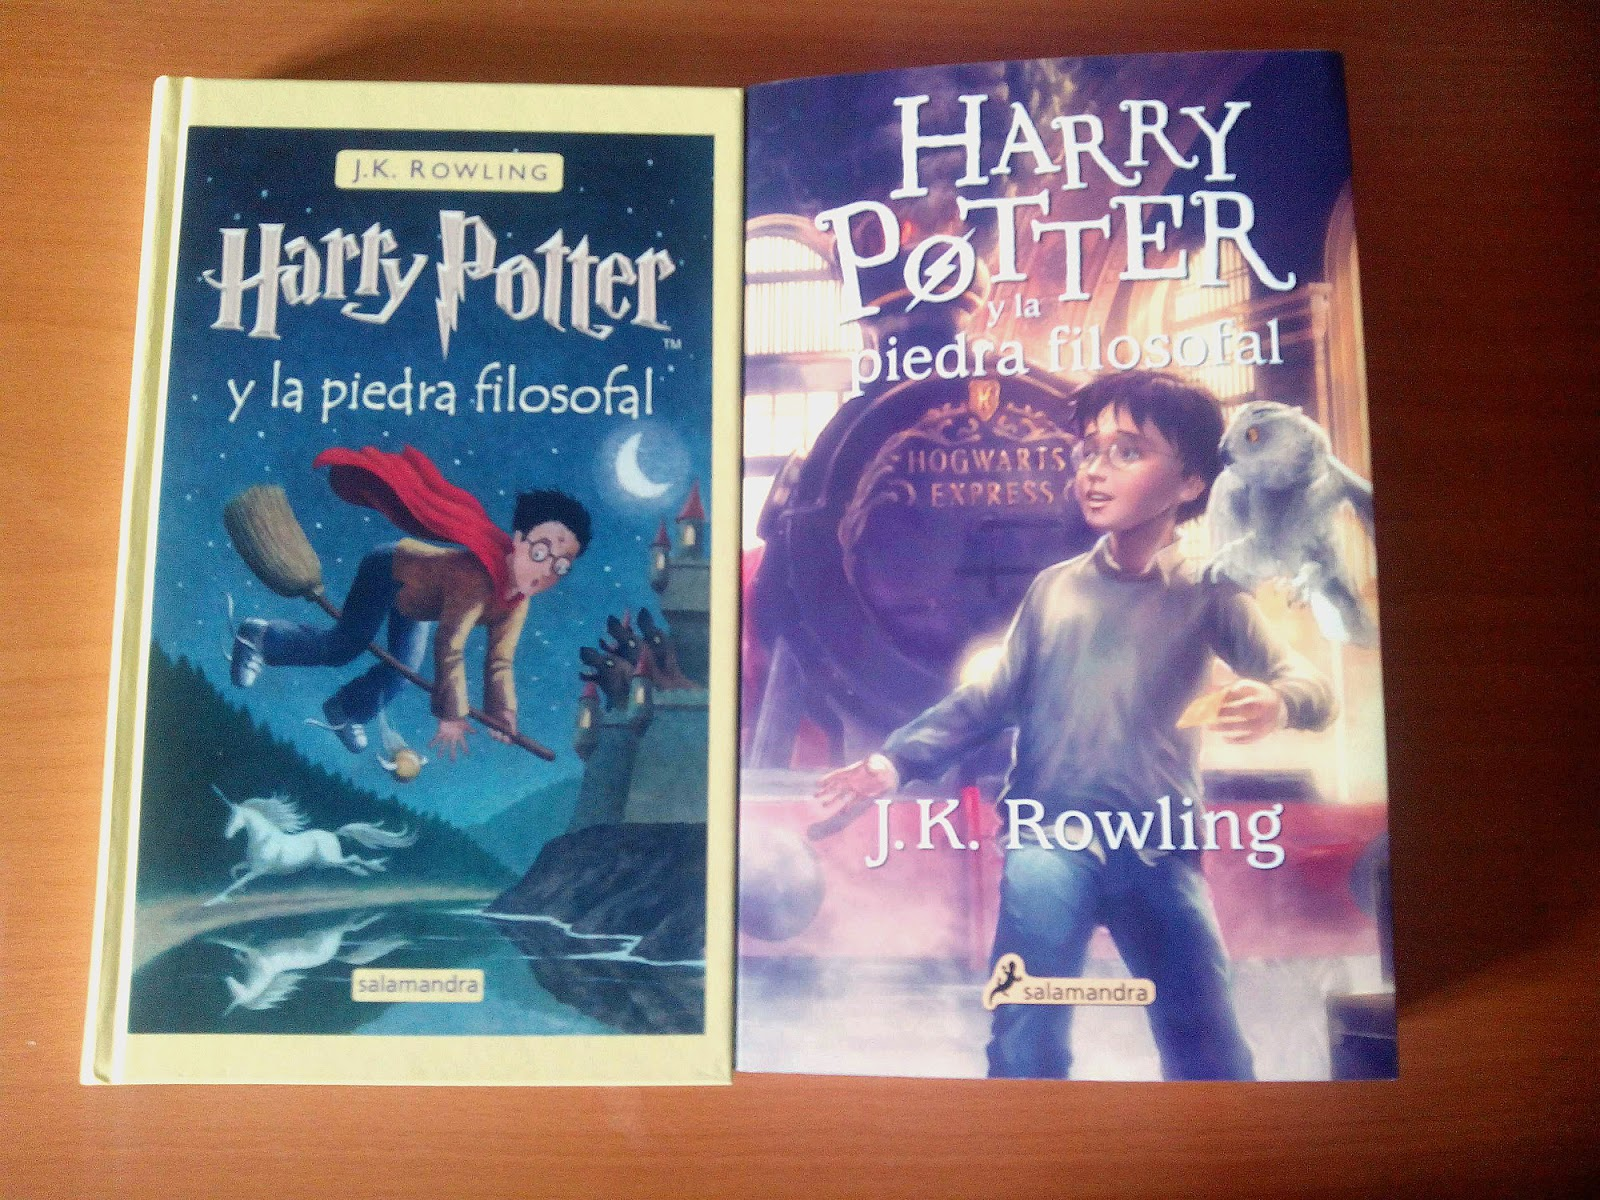 Harry Potter Libro 1 Noventa Y Dos Libros Blog Literario Reseña Harry